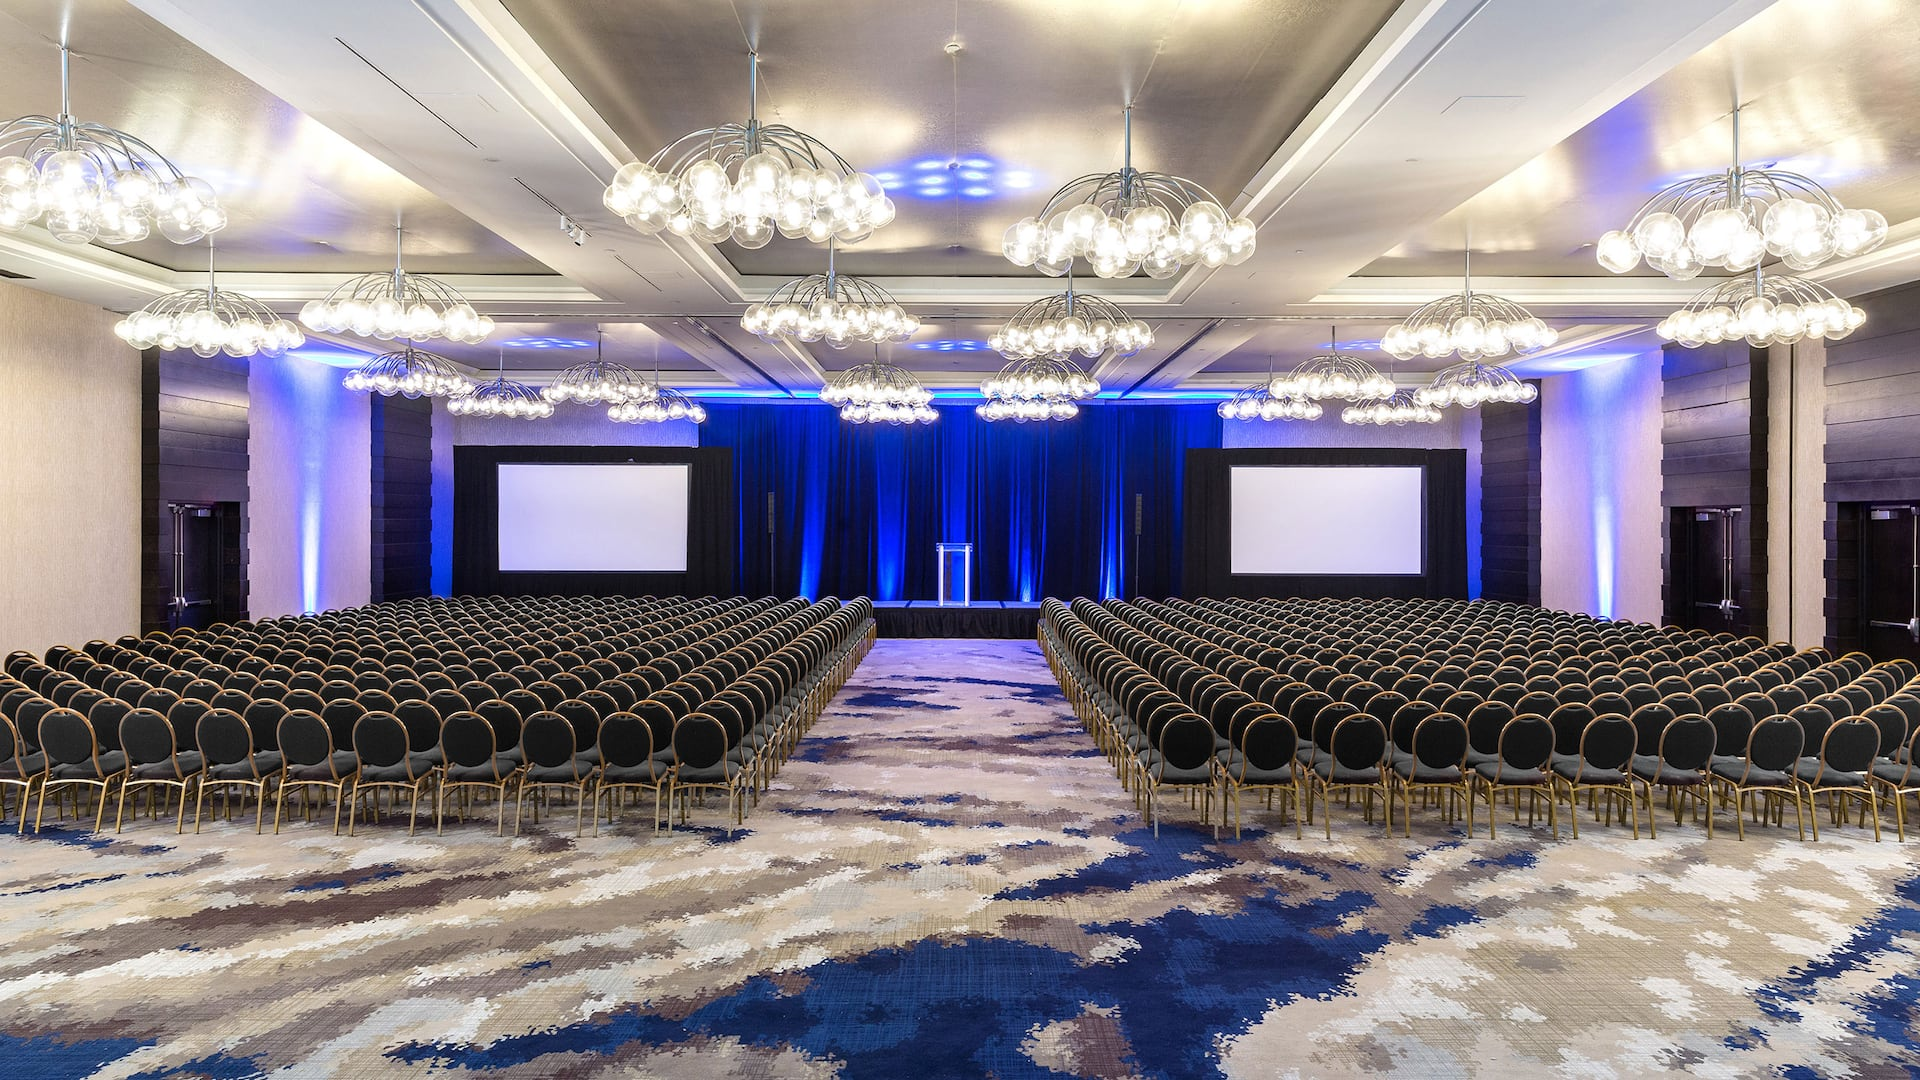 Spacious theater style event venue